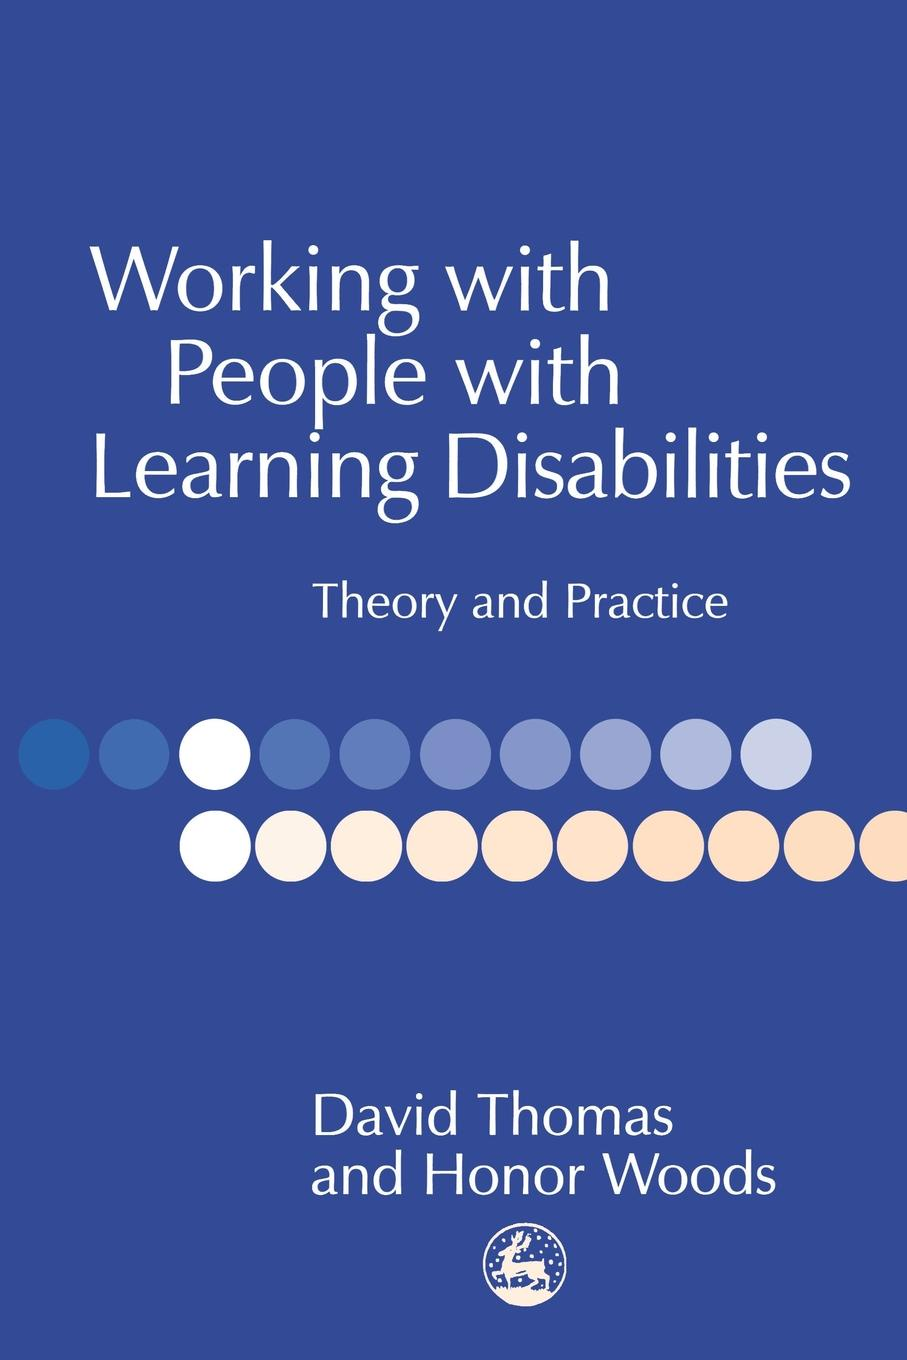 Working with People Learning Disabilities. Theory and Practice